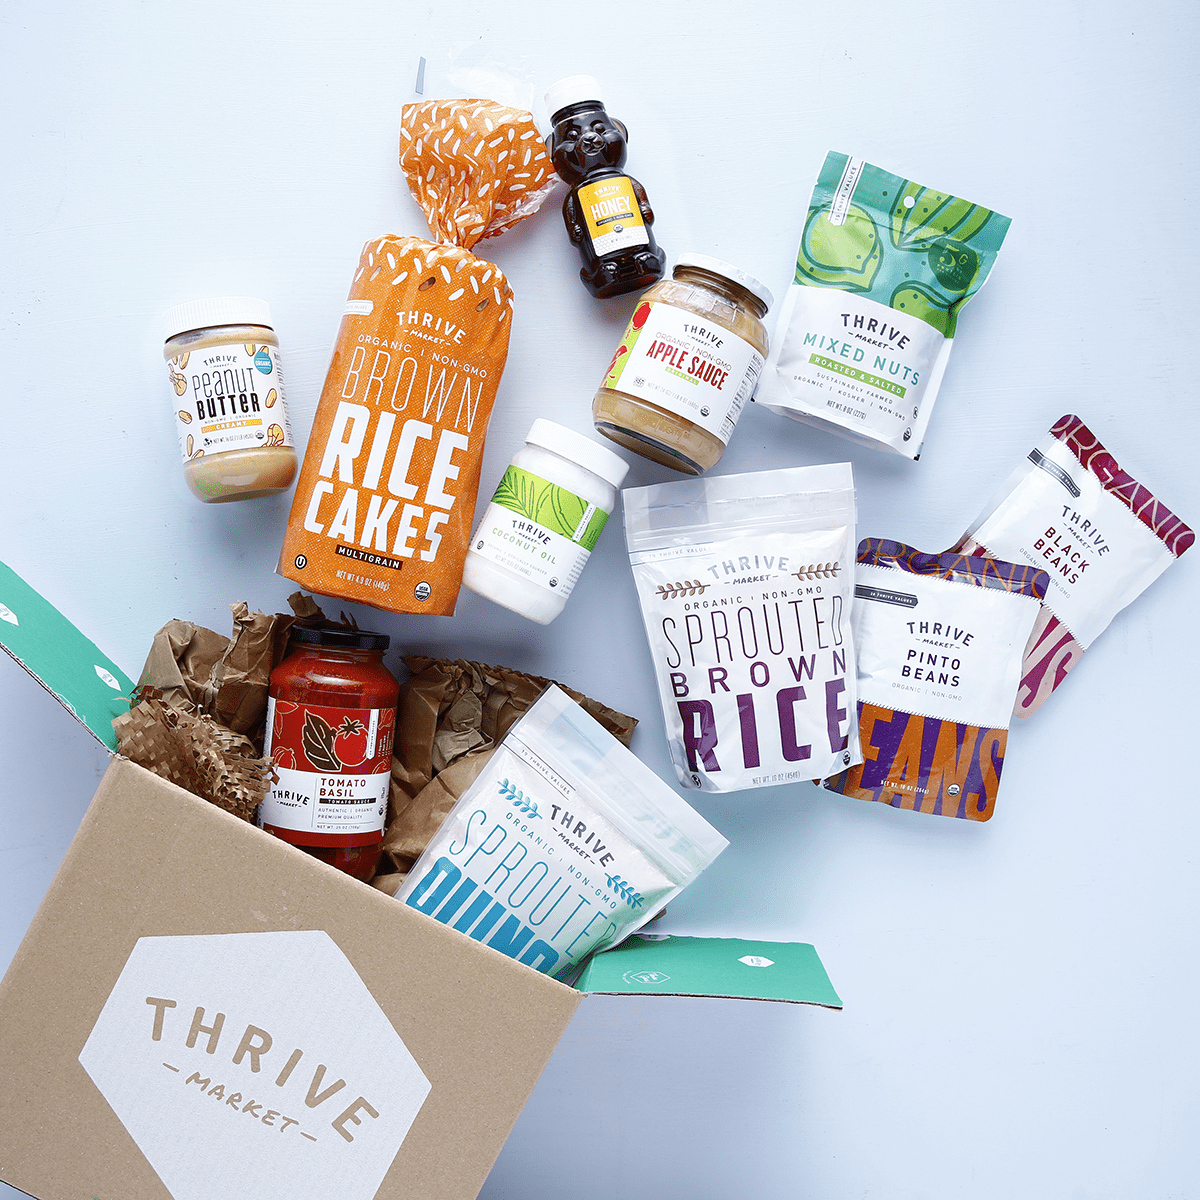 thrive market review box and products